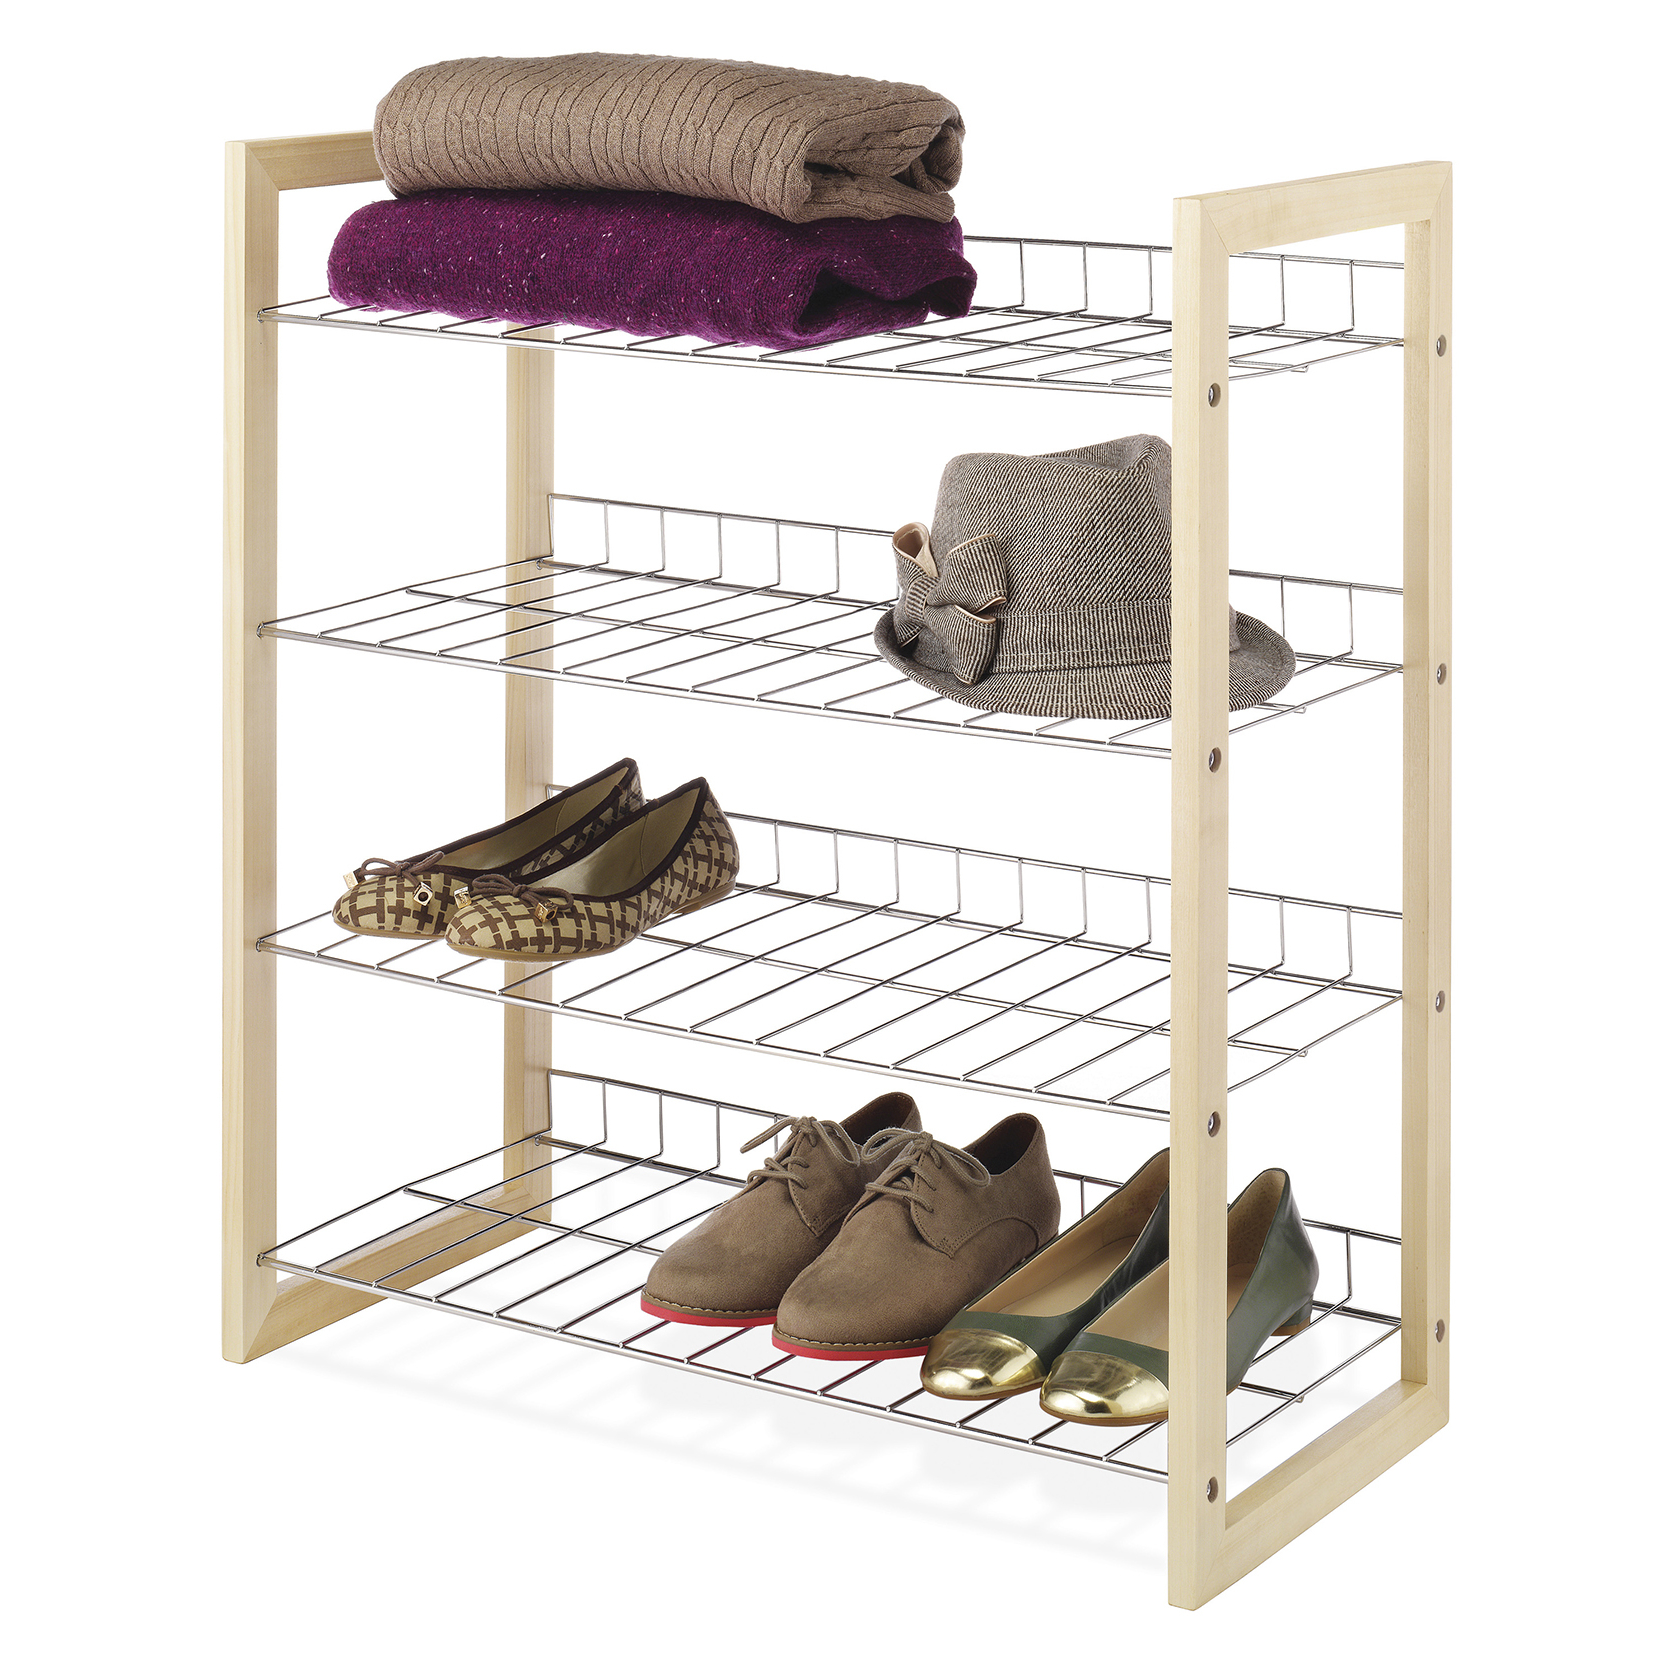 Merveilleux Whitmor 4 Tier Closet Shelf Wood U0026 Chrome